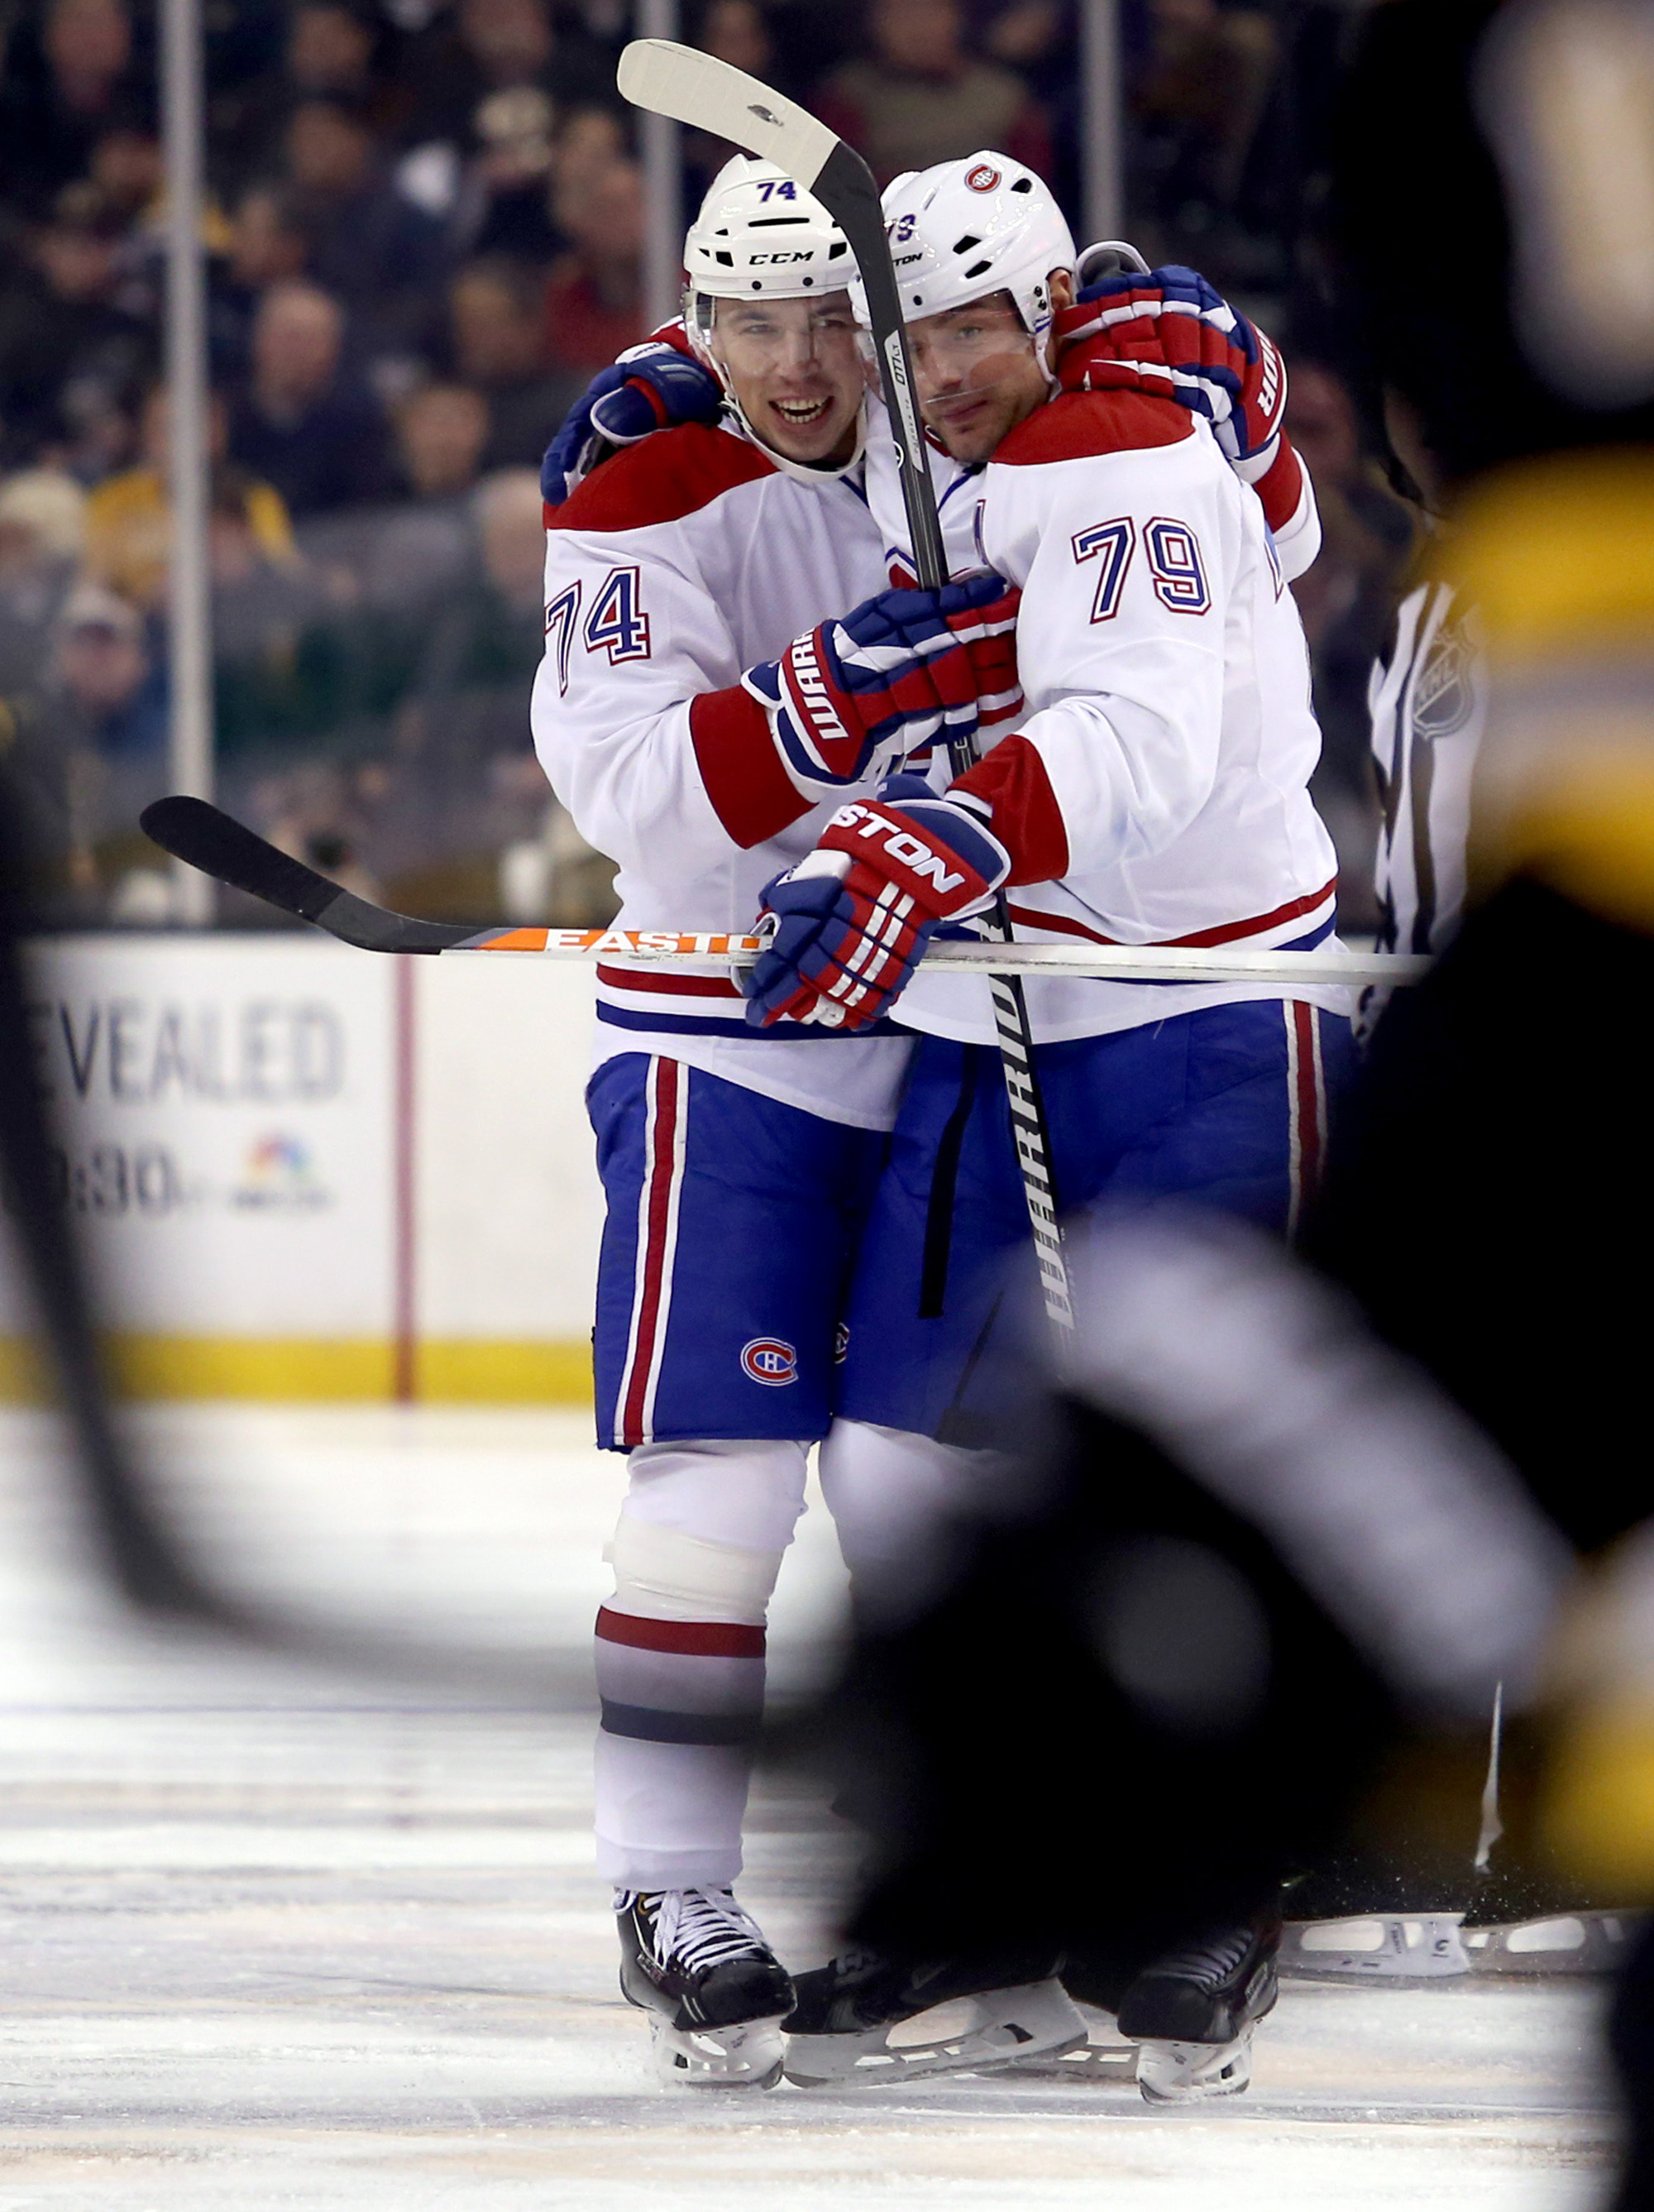 Montreal Canadiens defenseman Alexei Emelin (74) is congratulated by teammate Andrei Markov (79) after scoring a goal during the first period of an NHL hockey game against the Boston Bruins, Thursday, Jan. 30, 2014, in Boston. Markov assisted on the play